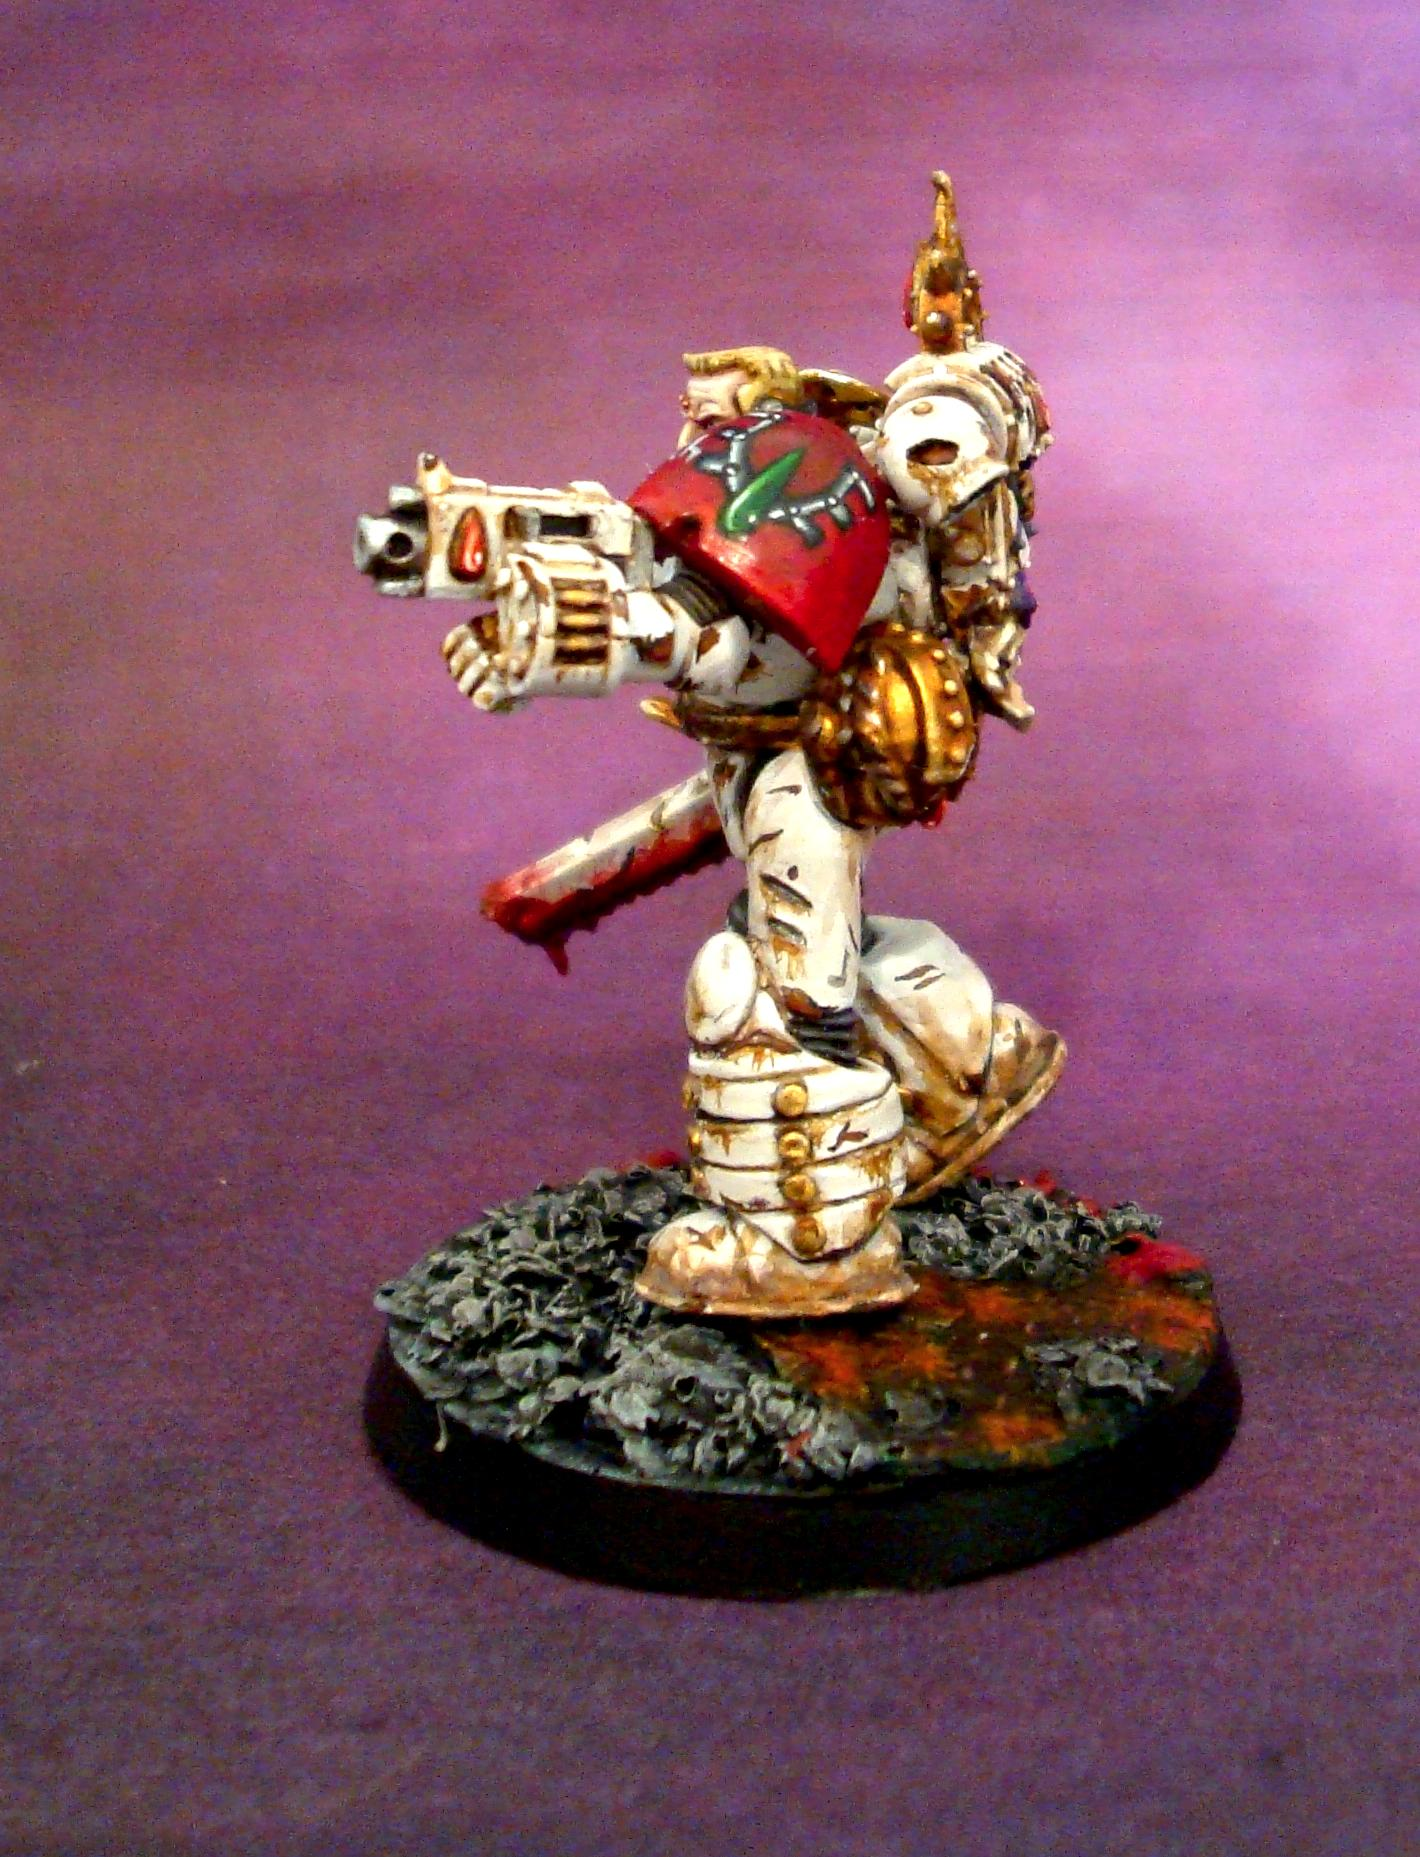 Freehand, Space Marines, True Scale, White Armour